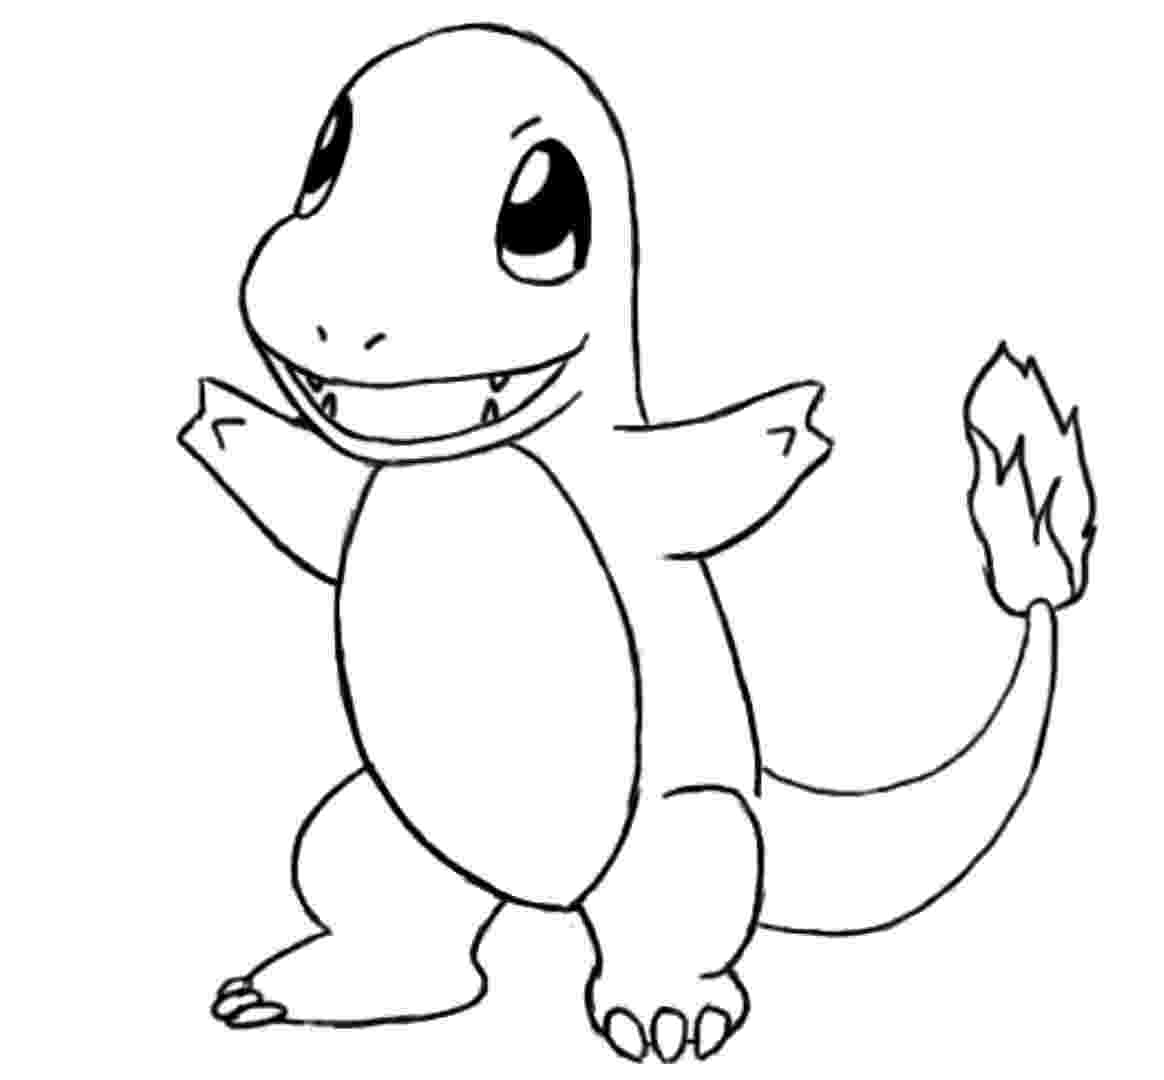 pokemon pitchers charmander coloring pages to download and print for free pitchers pokemon